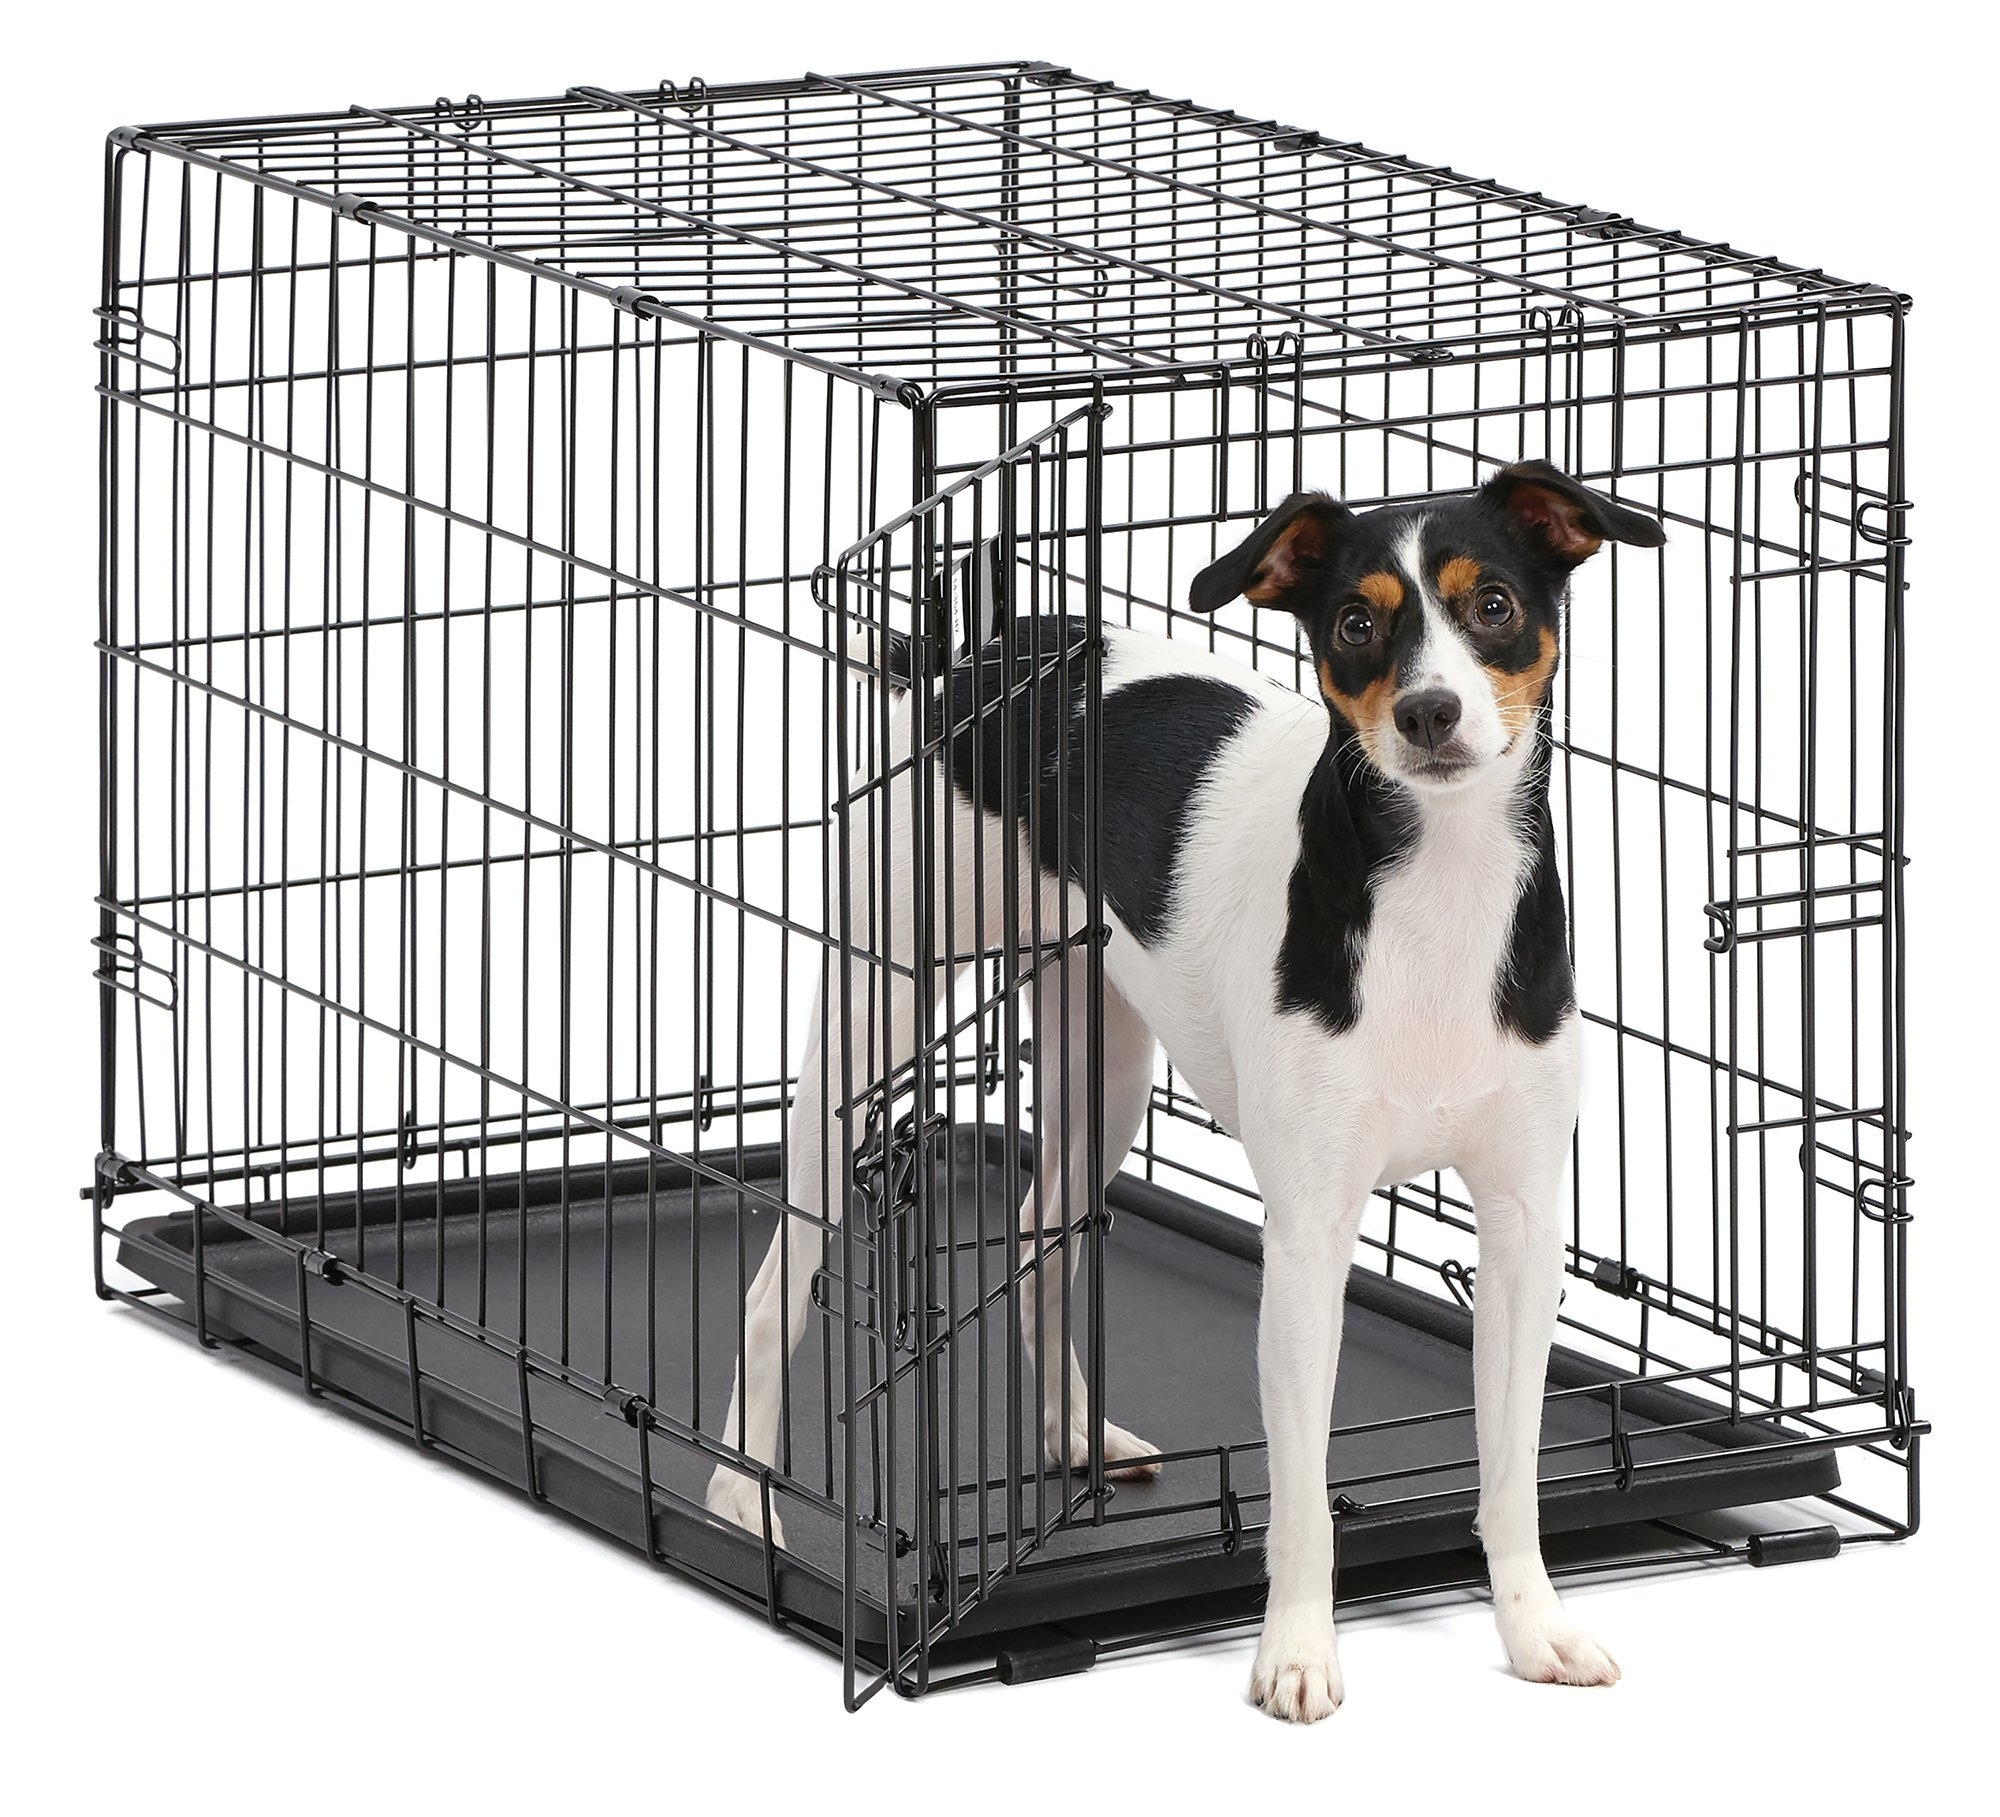 midwest icrate single door folding dog crates - Midwest Crates